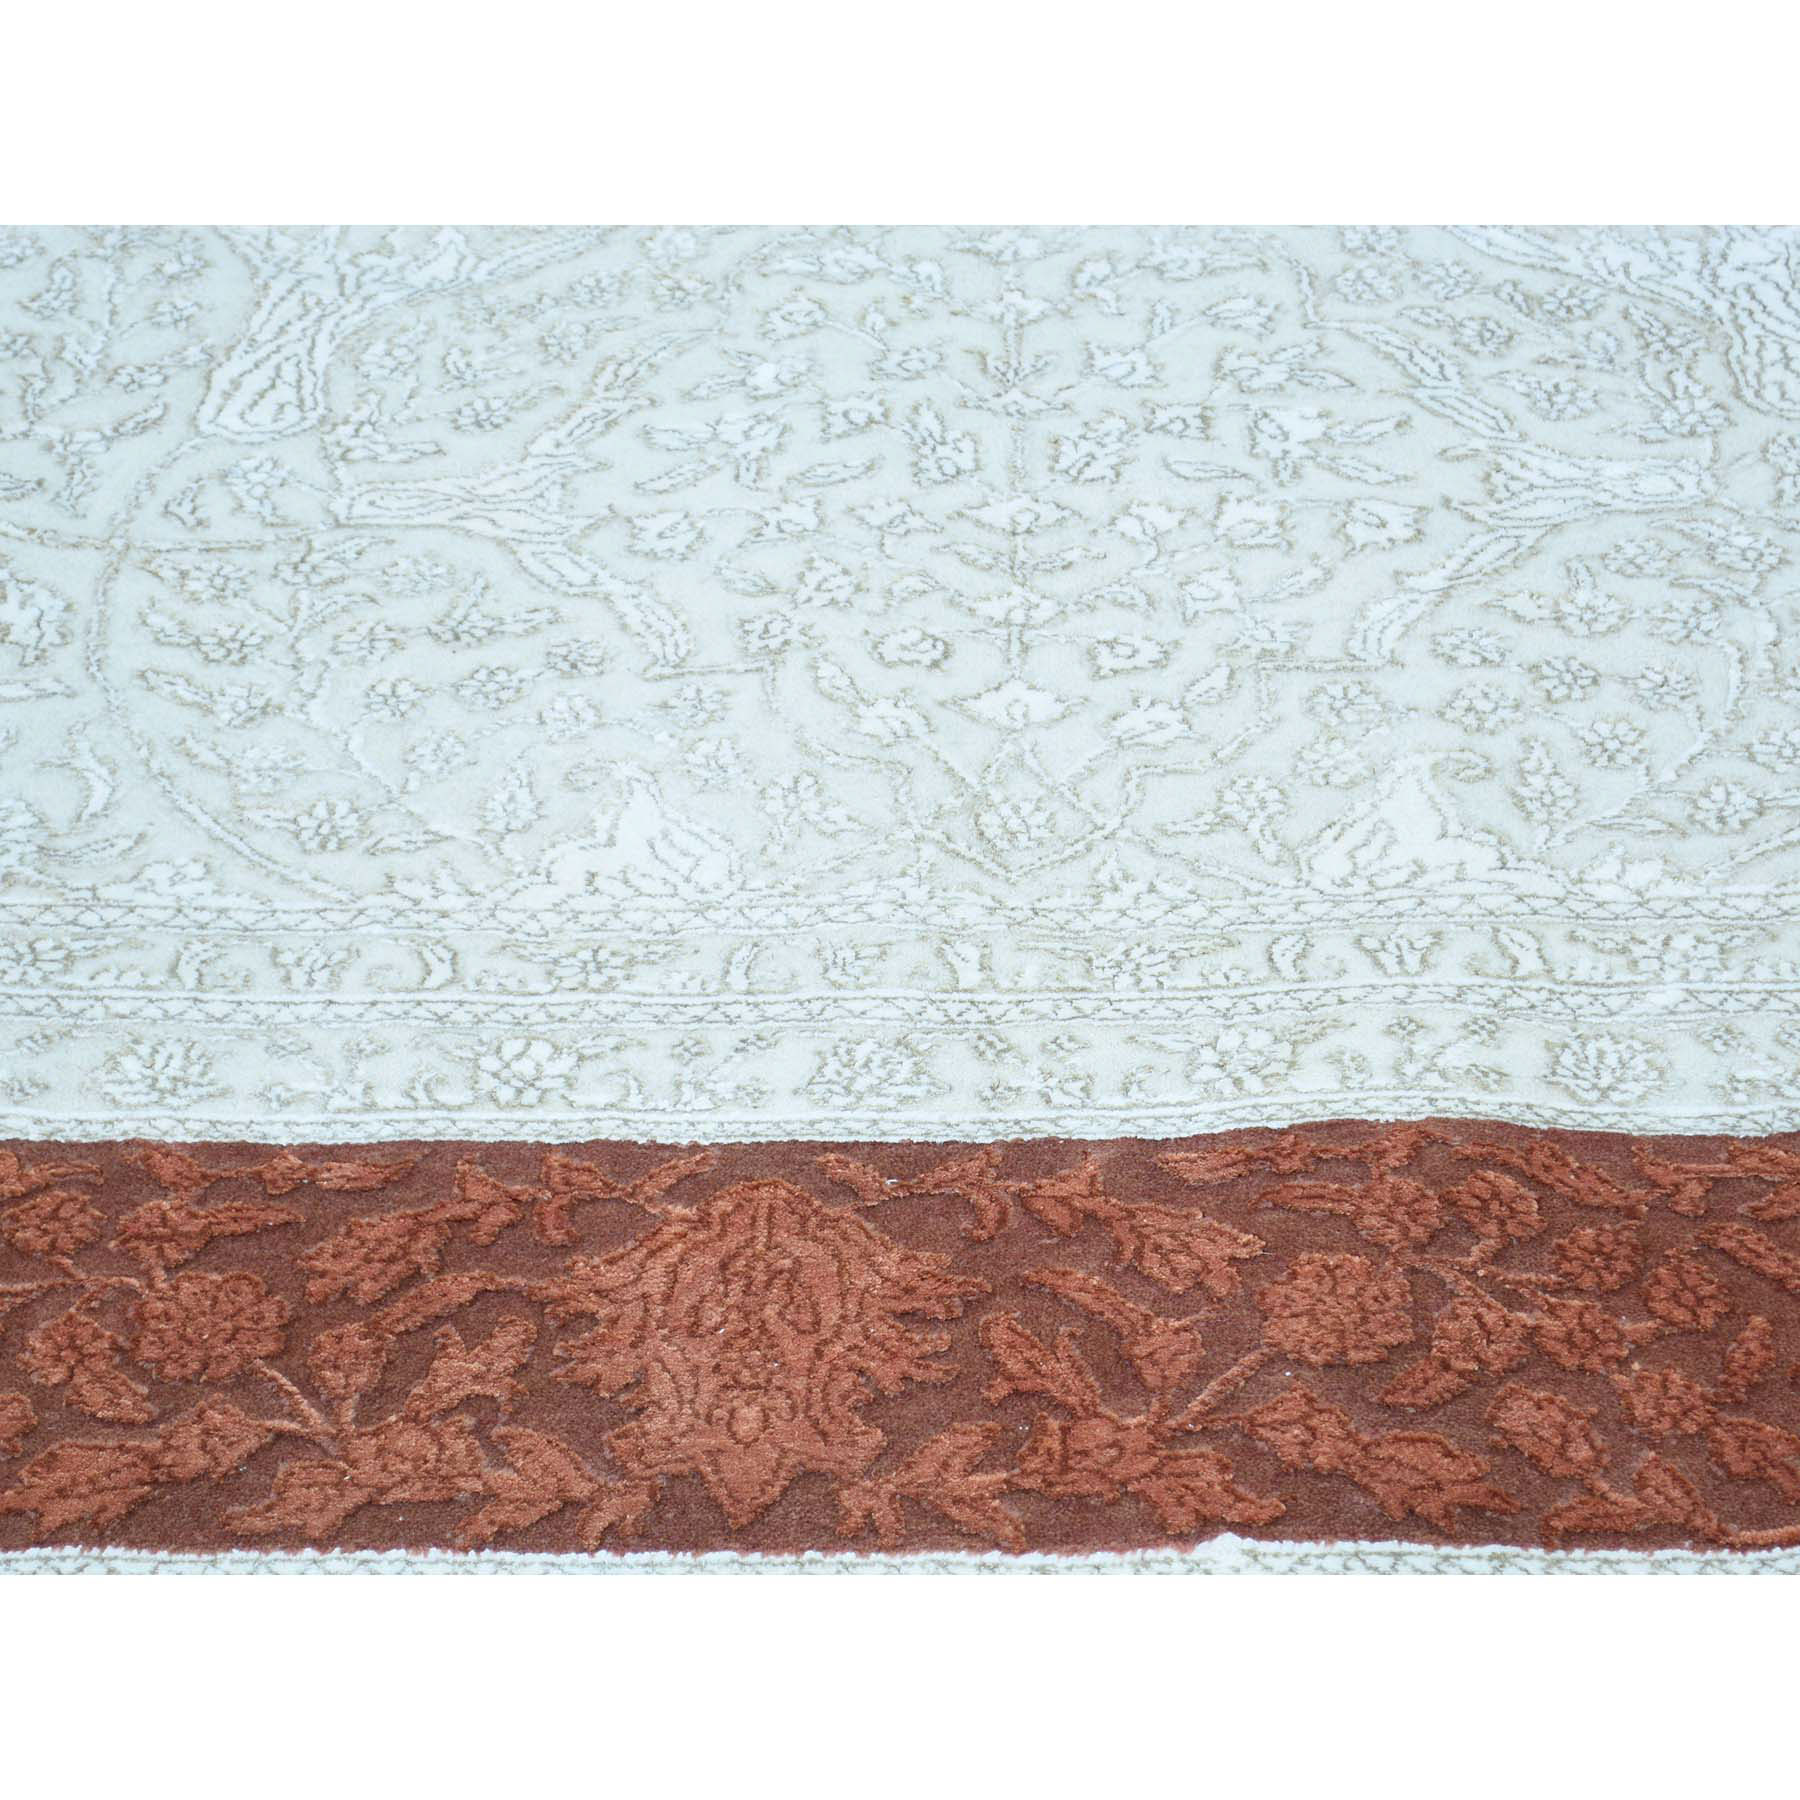 "9'7""x13'9"" Tone on Tone Tabriz Half Wool and Half Silk Hand-Knotted Rug"